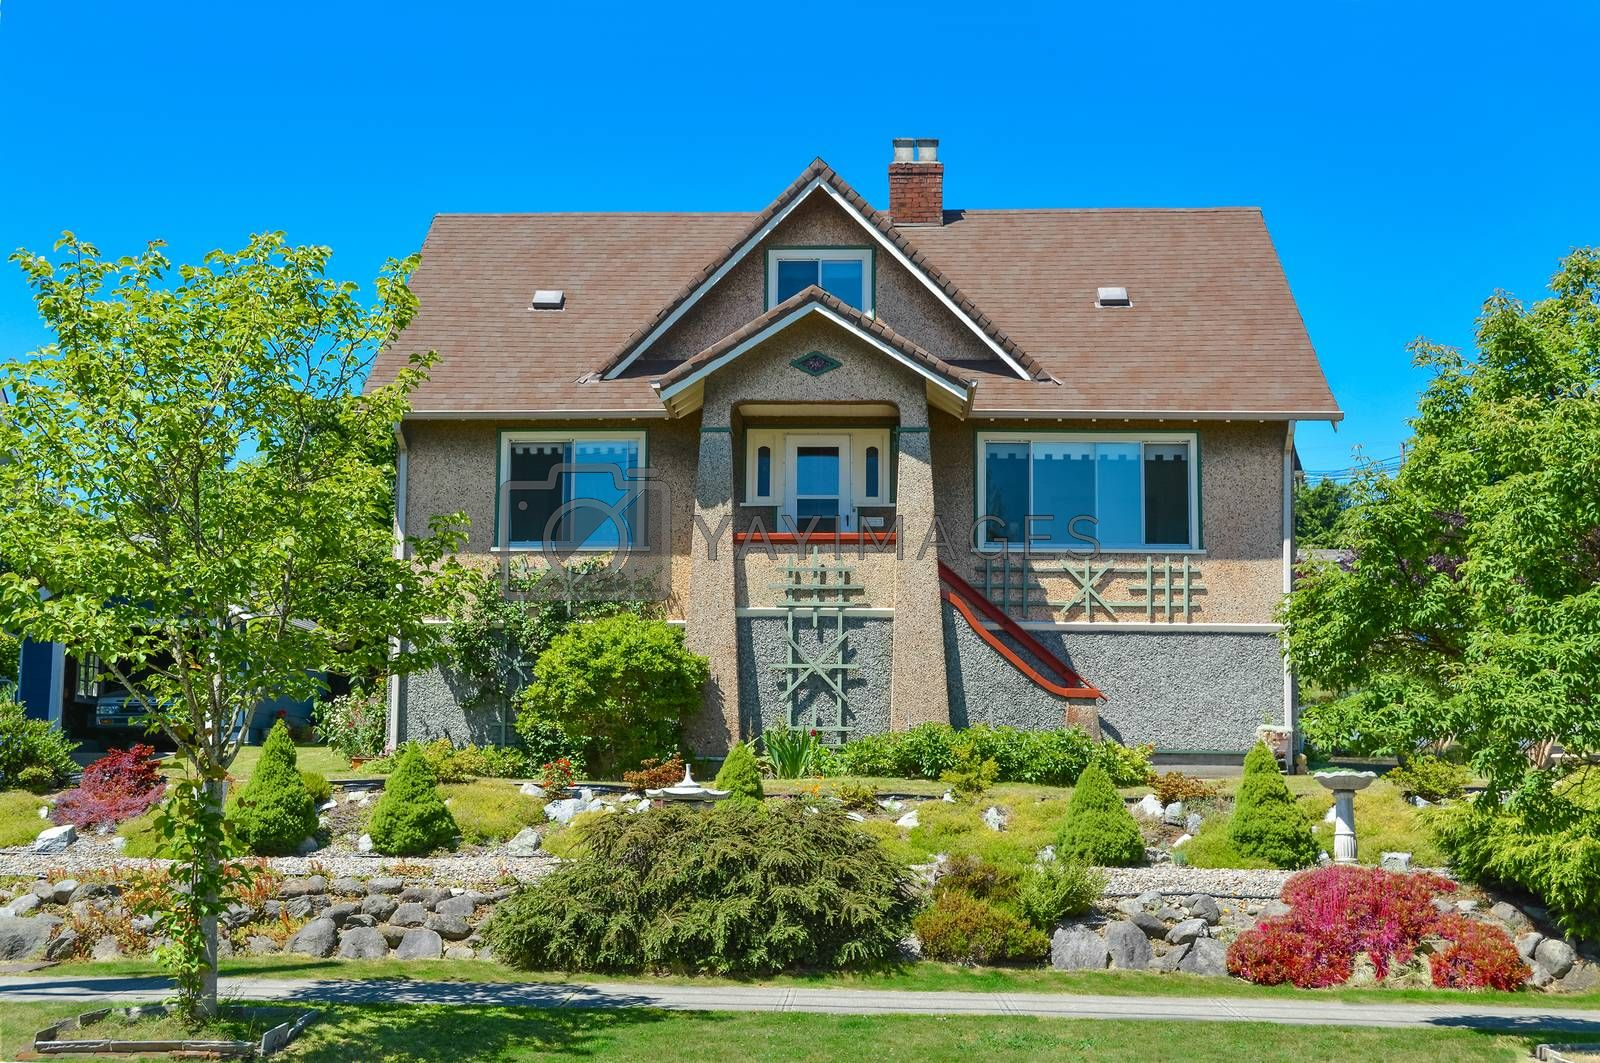 Royalty free image of Average north american house in suburbs of Vancouver. by Imagenet